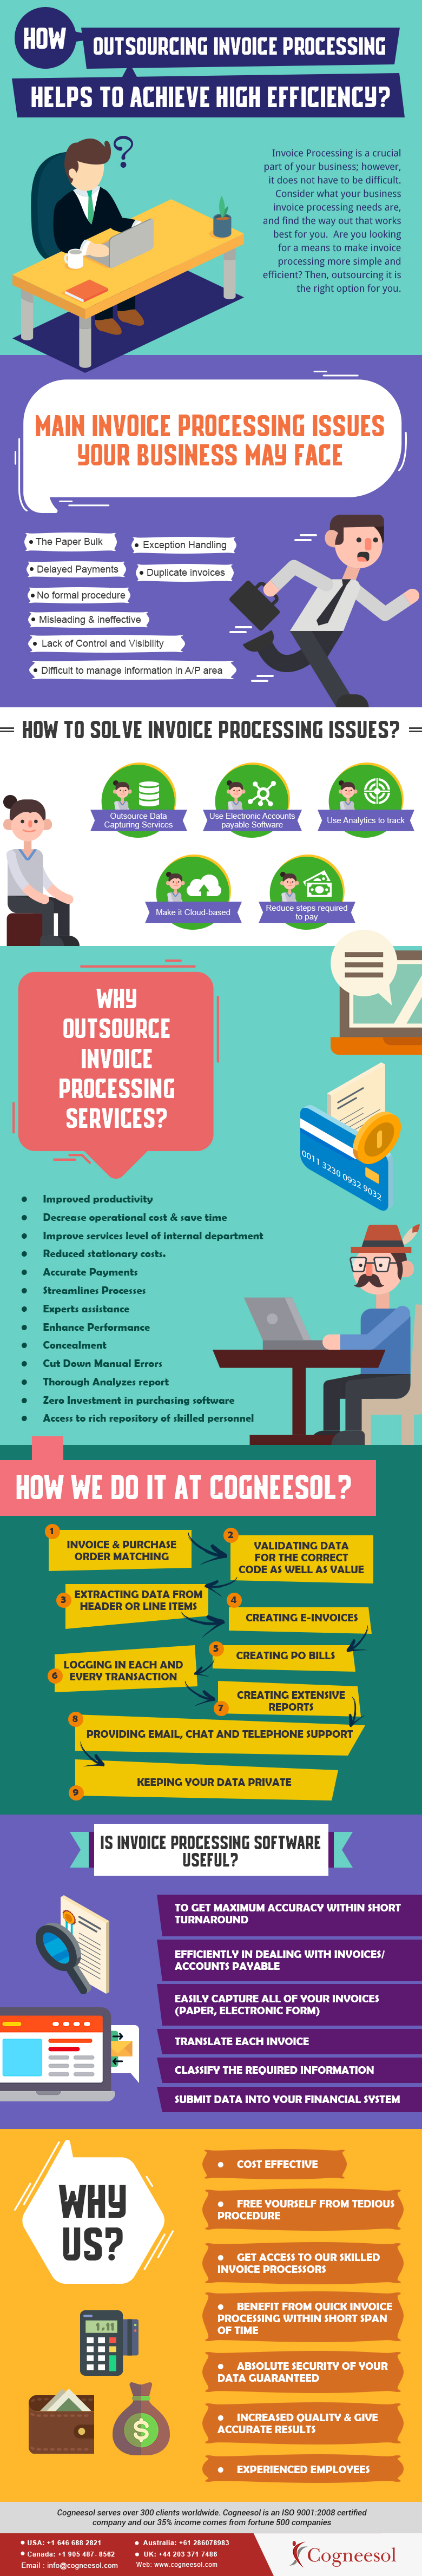 Outsourcing Invoice Processing